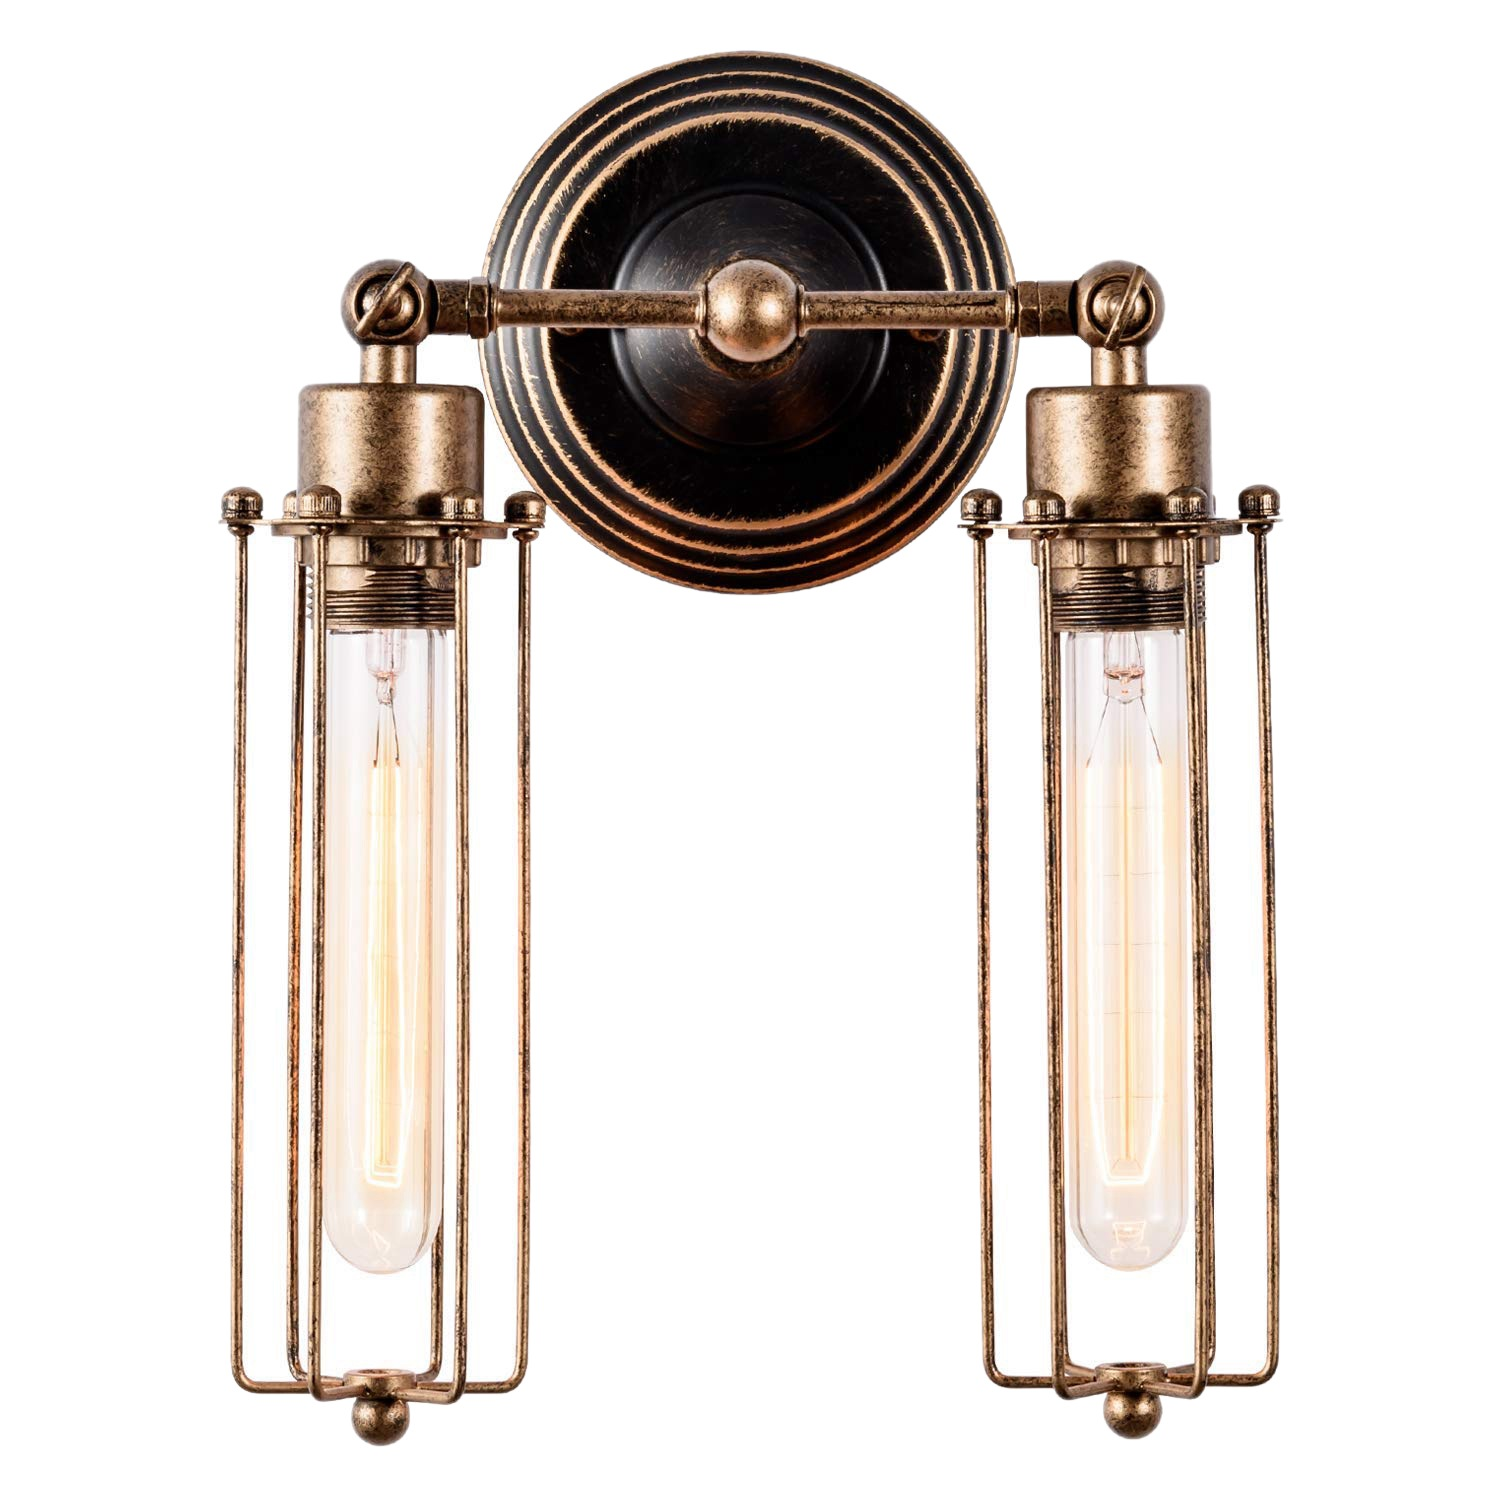 Applique Industrial Wall Sconce Old Luminaire Tube Light Shade Vintage Applique Retro For Home Champagne Coffee (bulbs Not Included) (2 Lights).